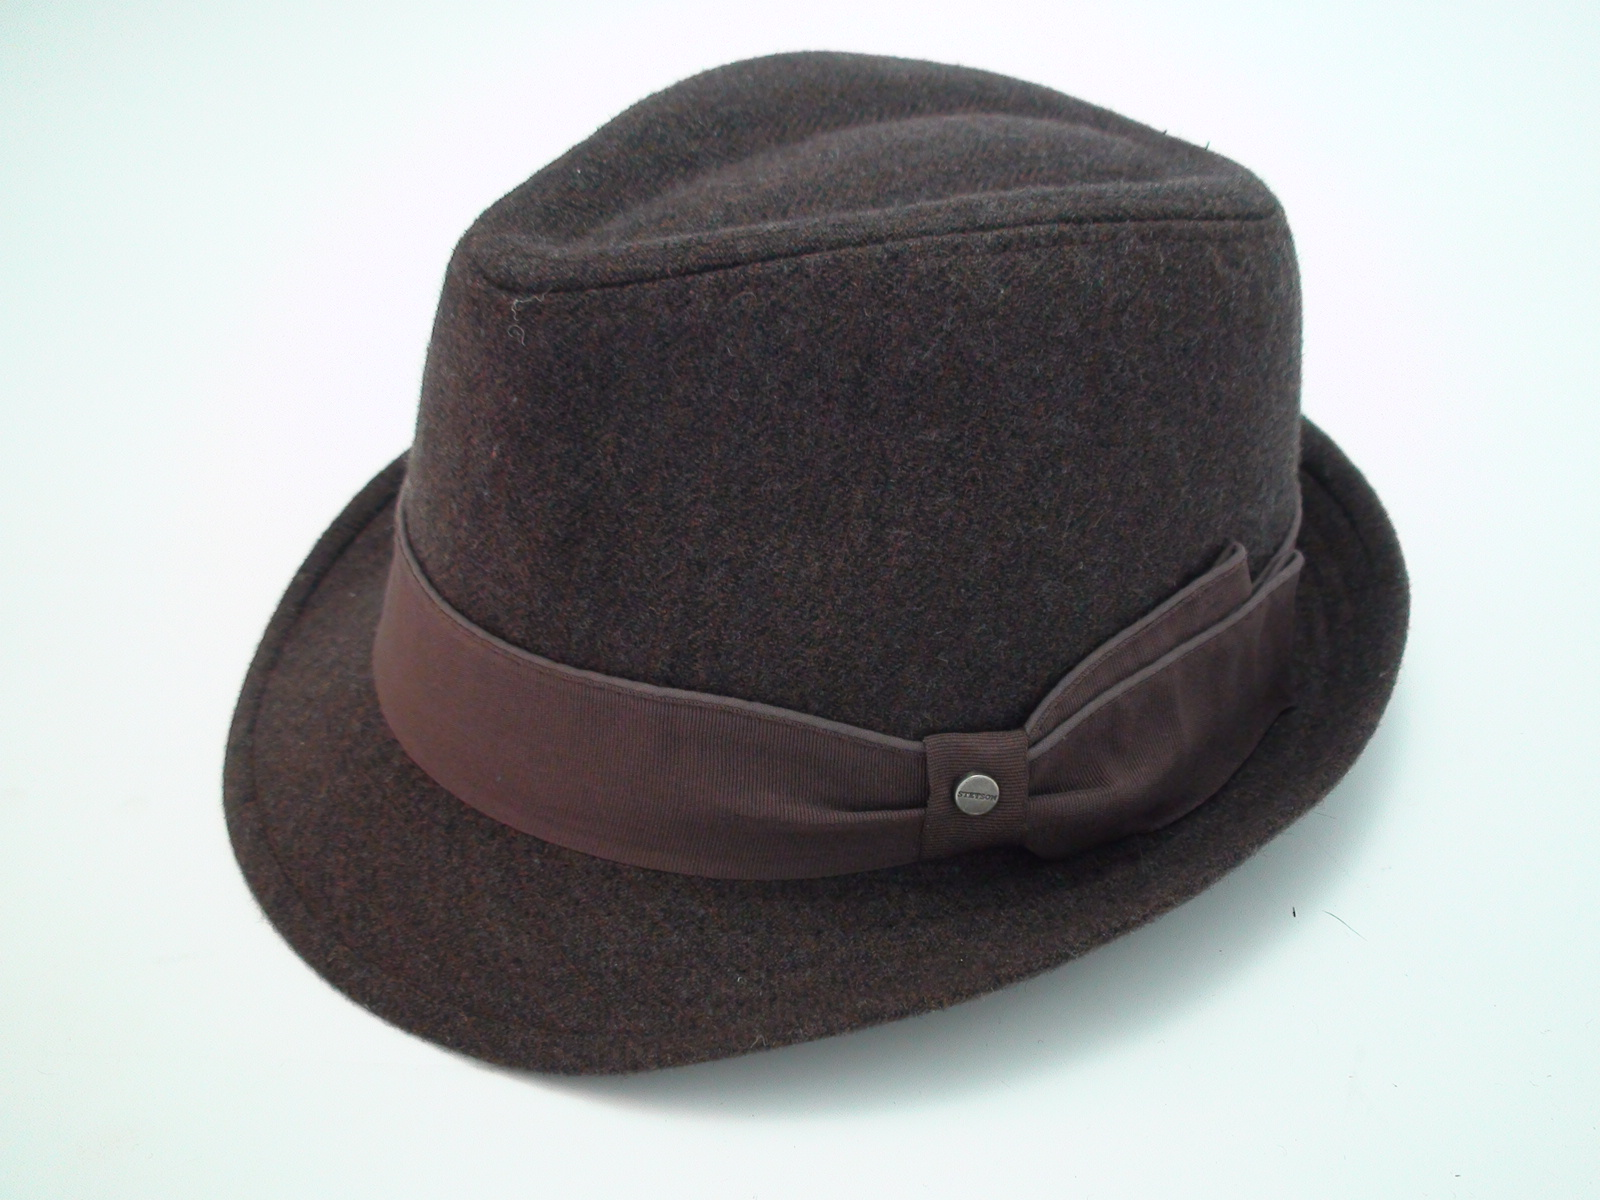 b9d4c16408e46 Stetson All American Brown Herringbone Wool Blend Trilby Fedora Hat